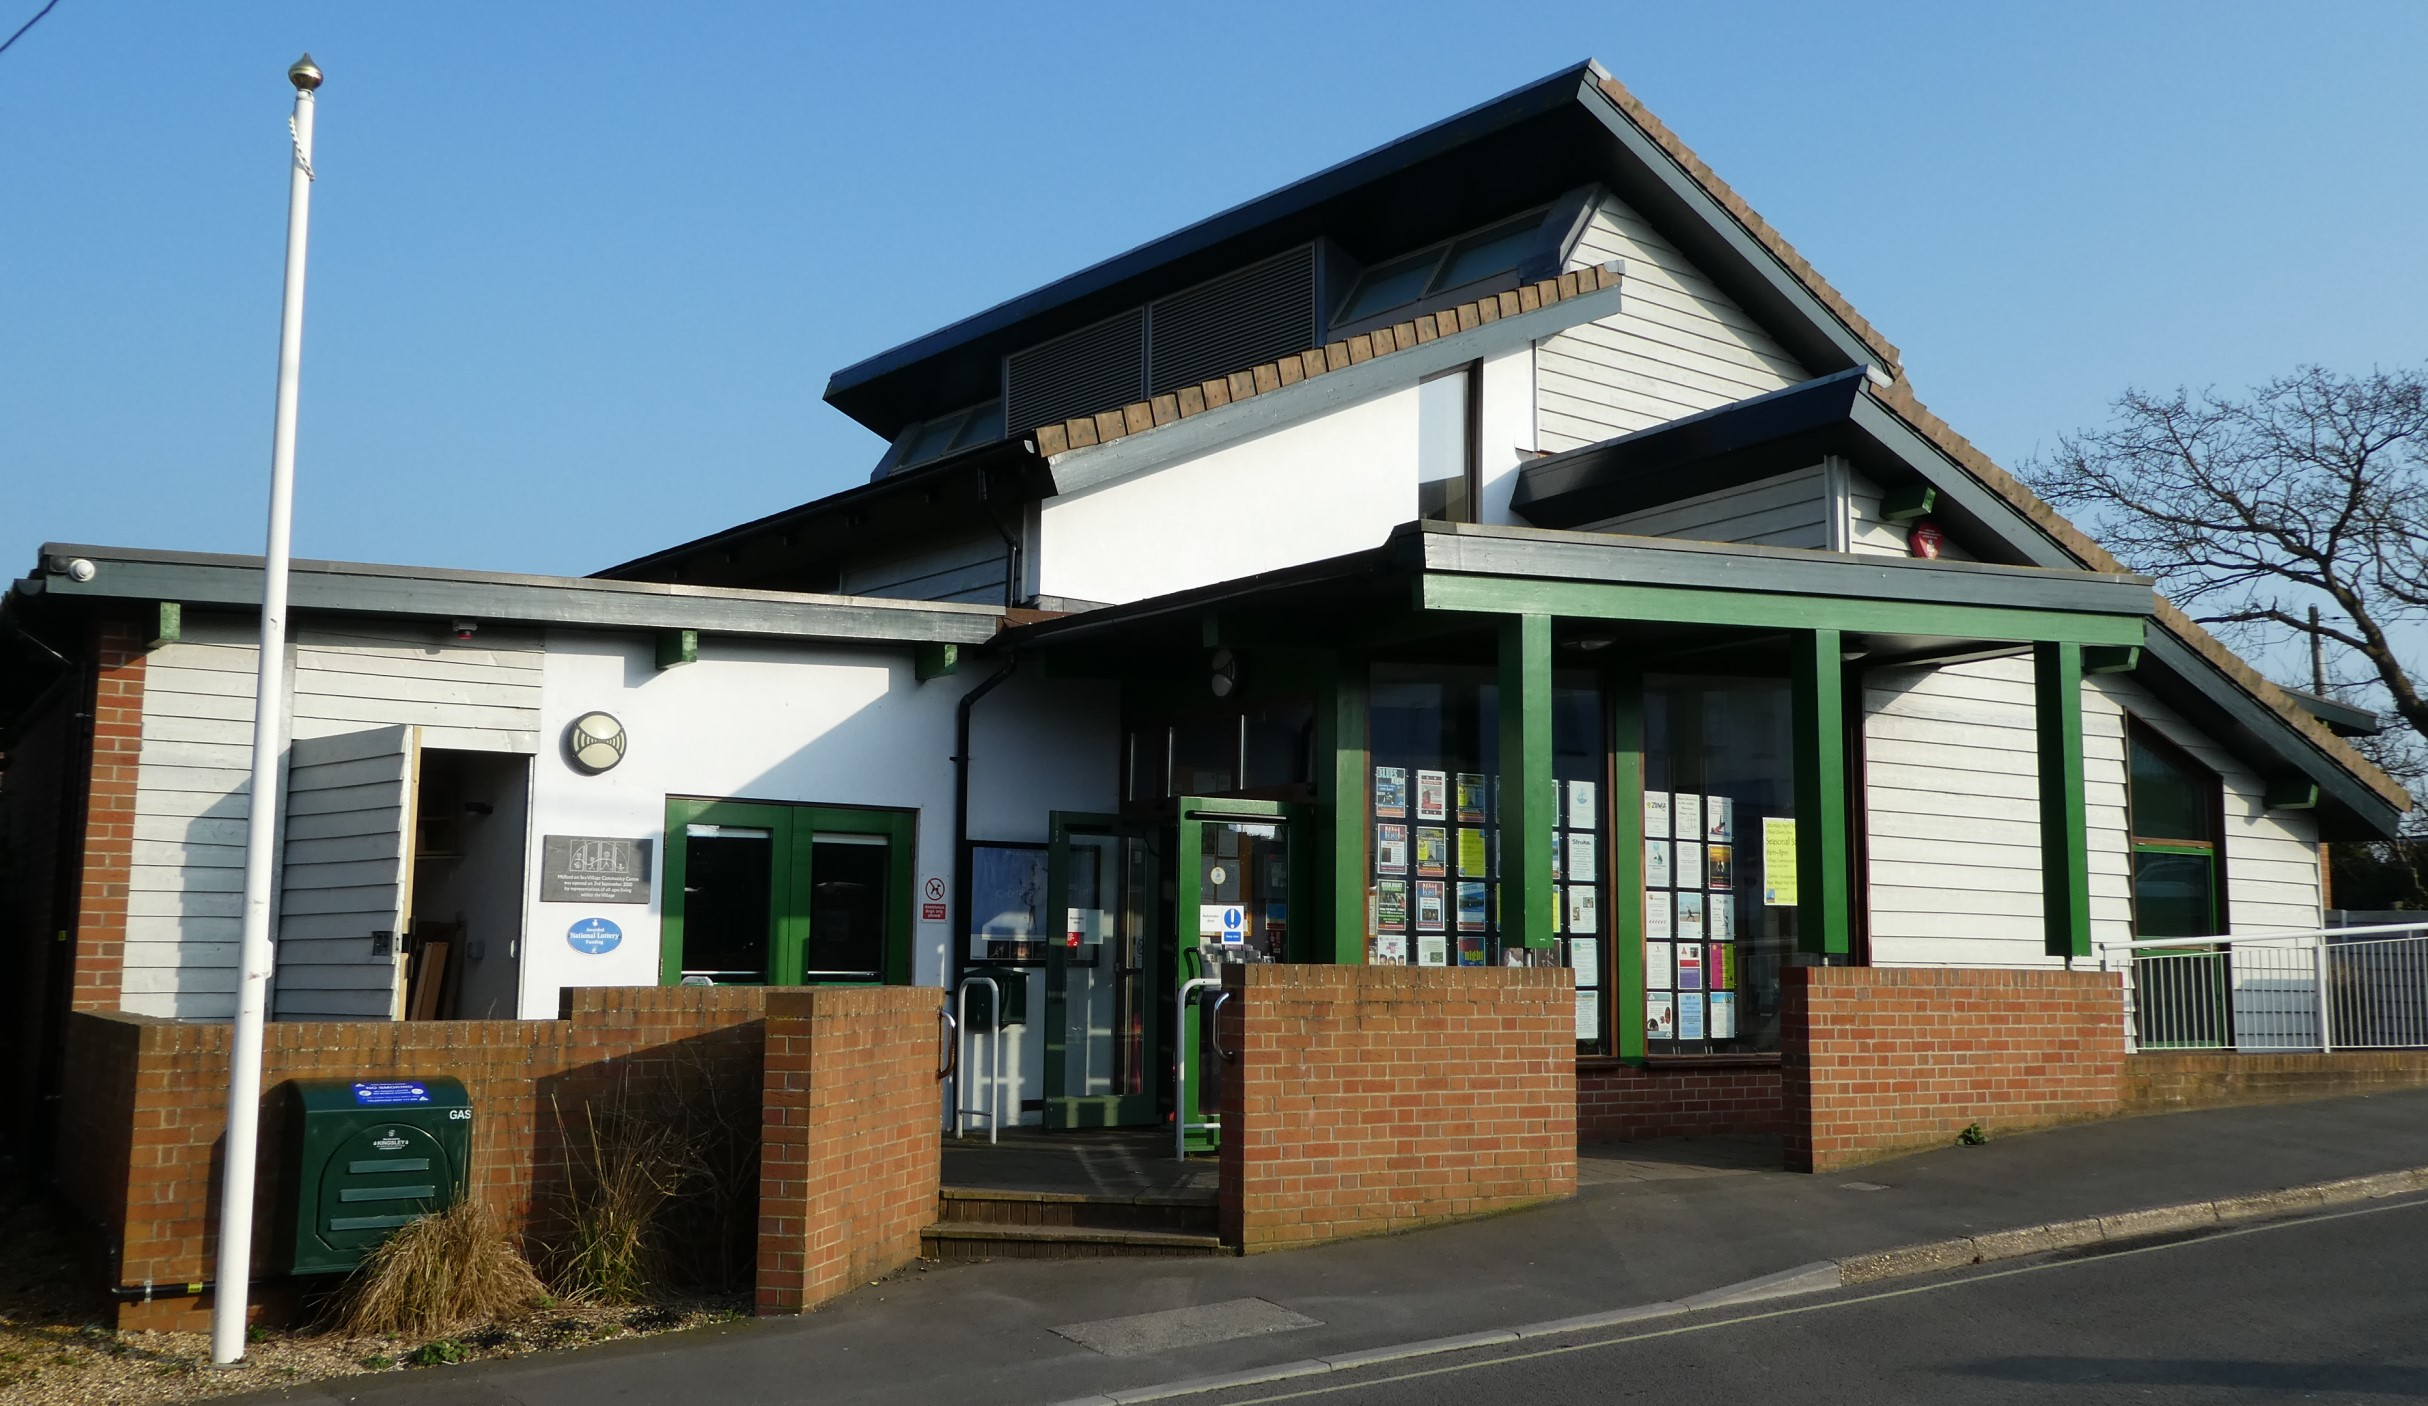 Milford on Sea Community Centre